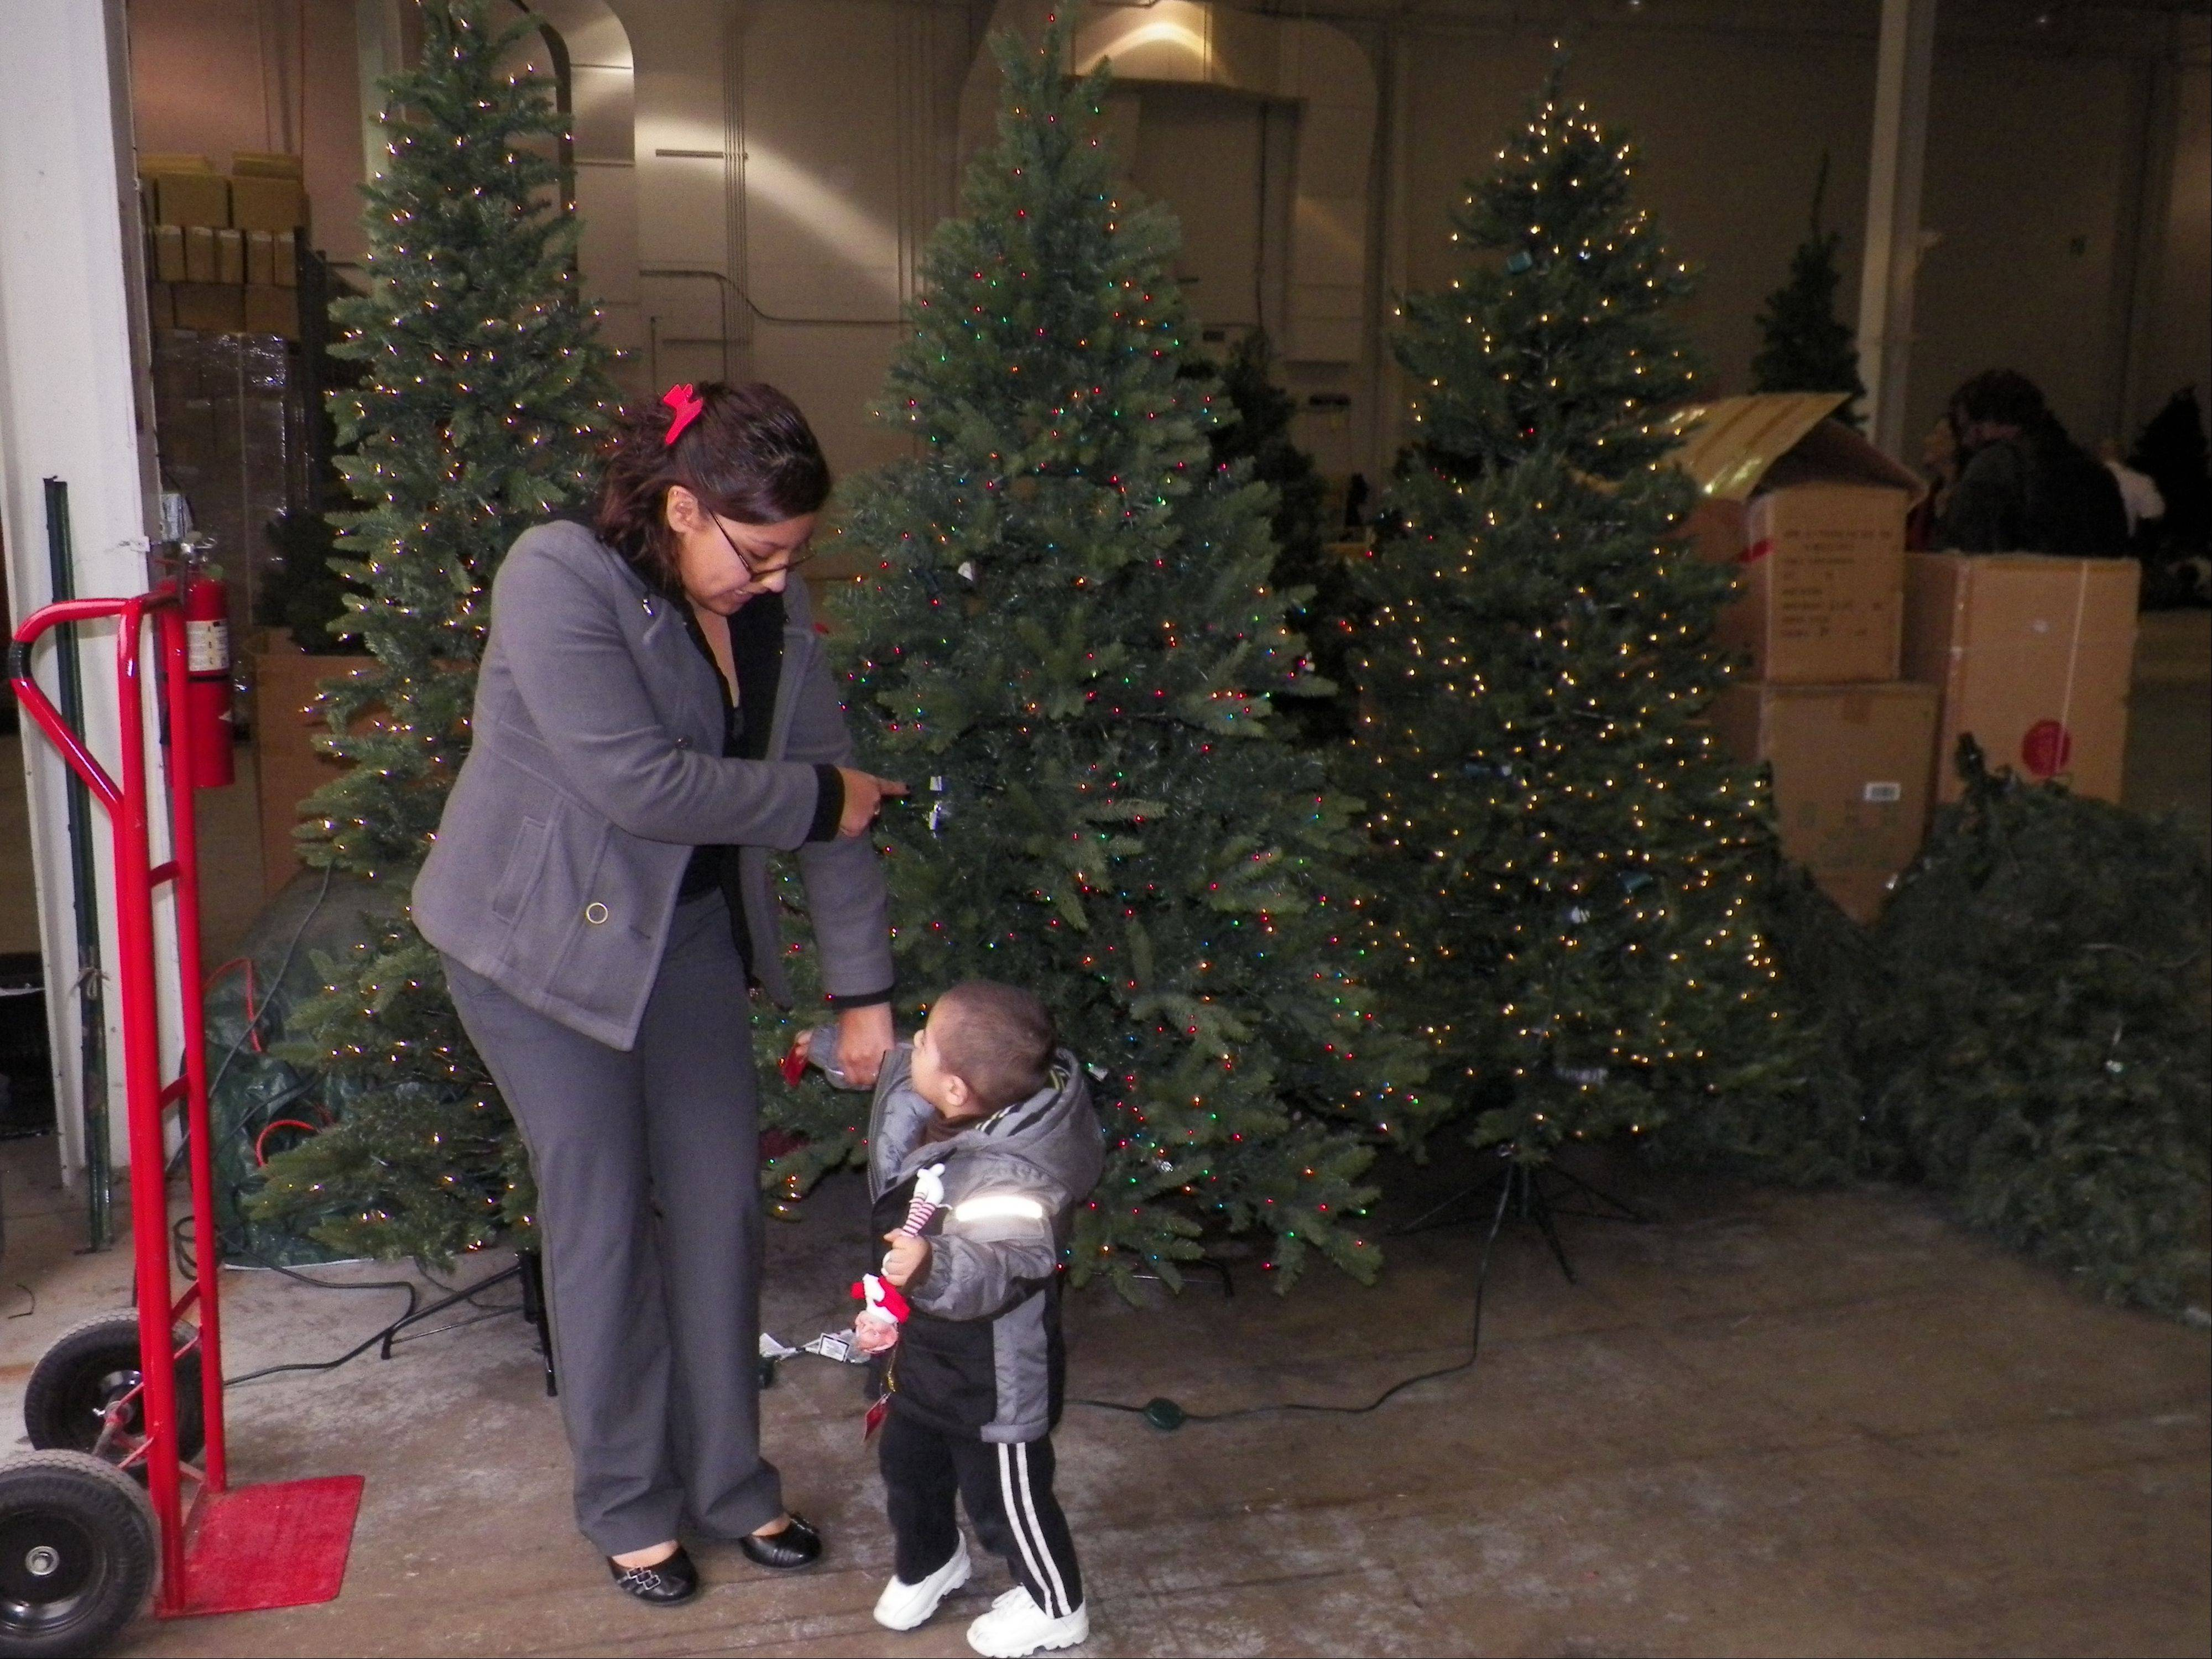 Marisa Soto, a single mother who lives in Waukegan, and her son Jayden, 1�, pick out an artificial Christmas tree at Treetime Christmas Creations in Lake Barrington in a program with Salvation Army.